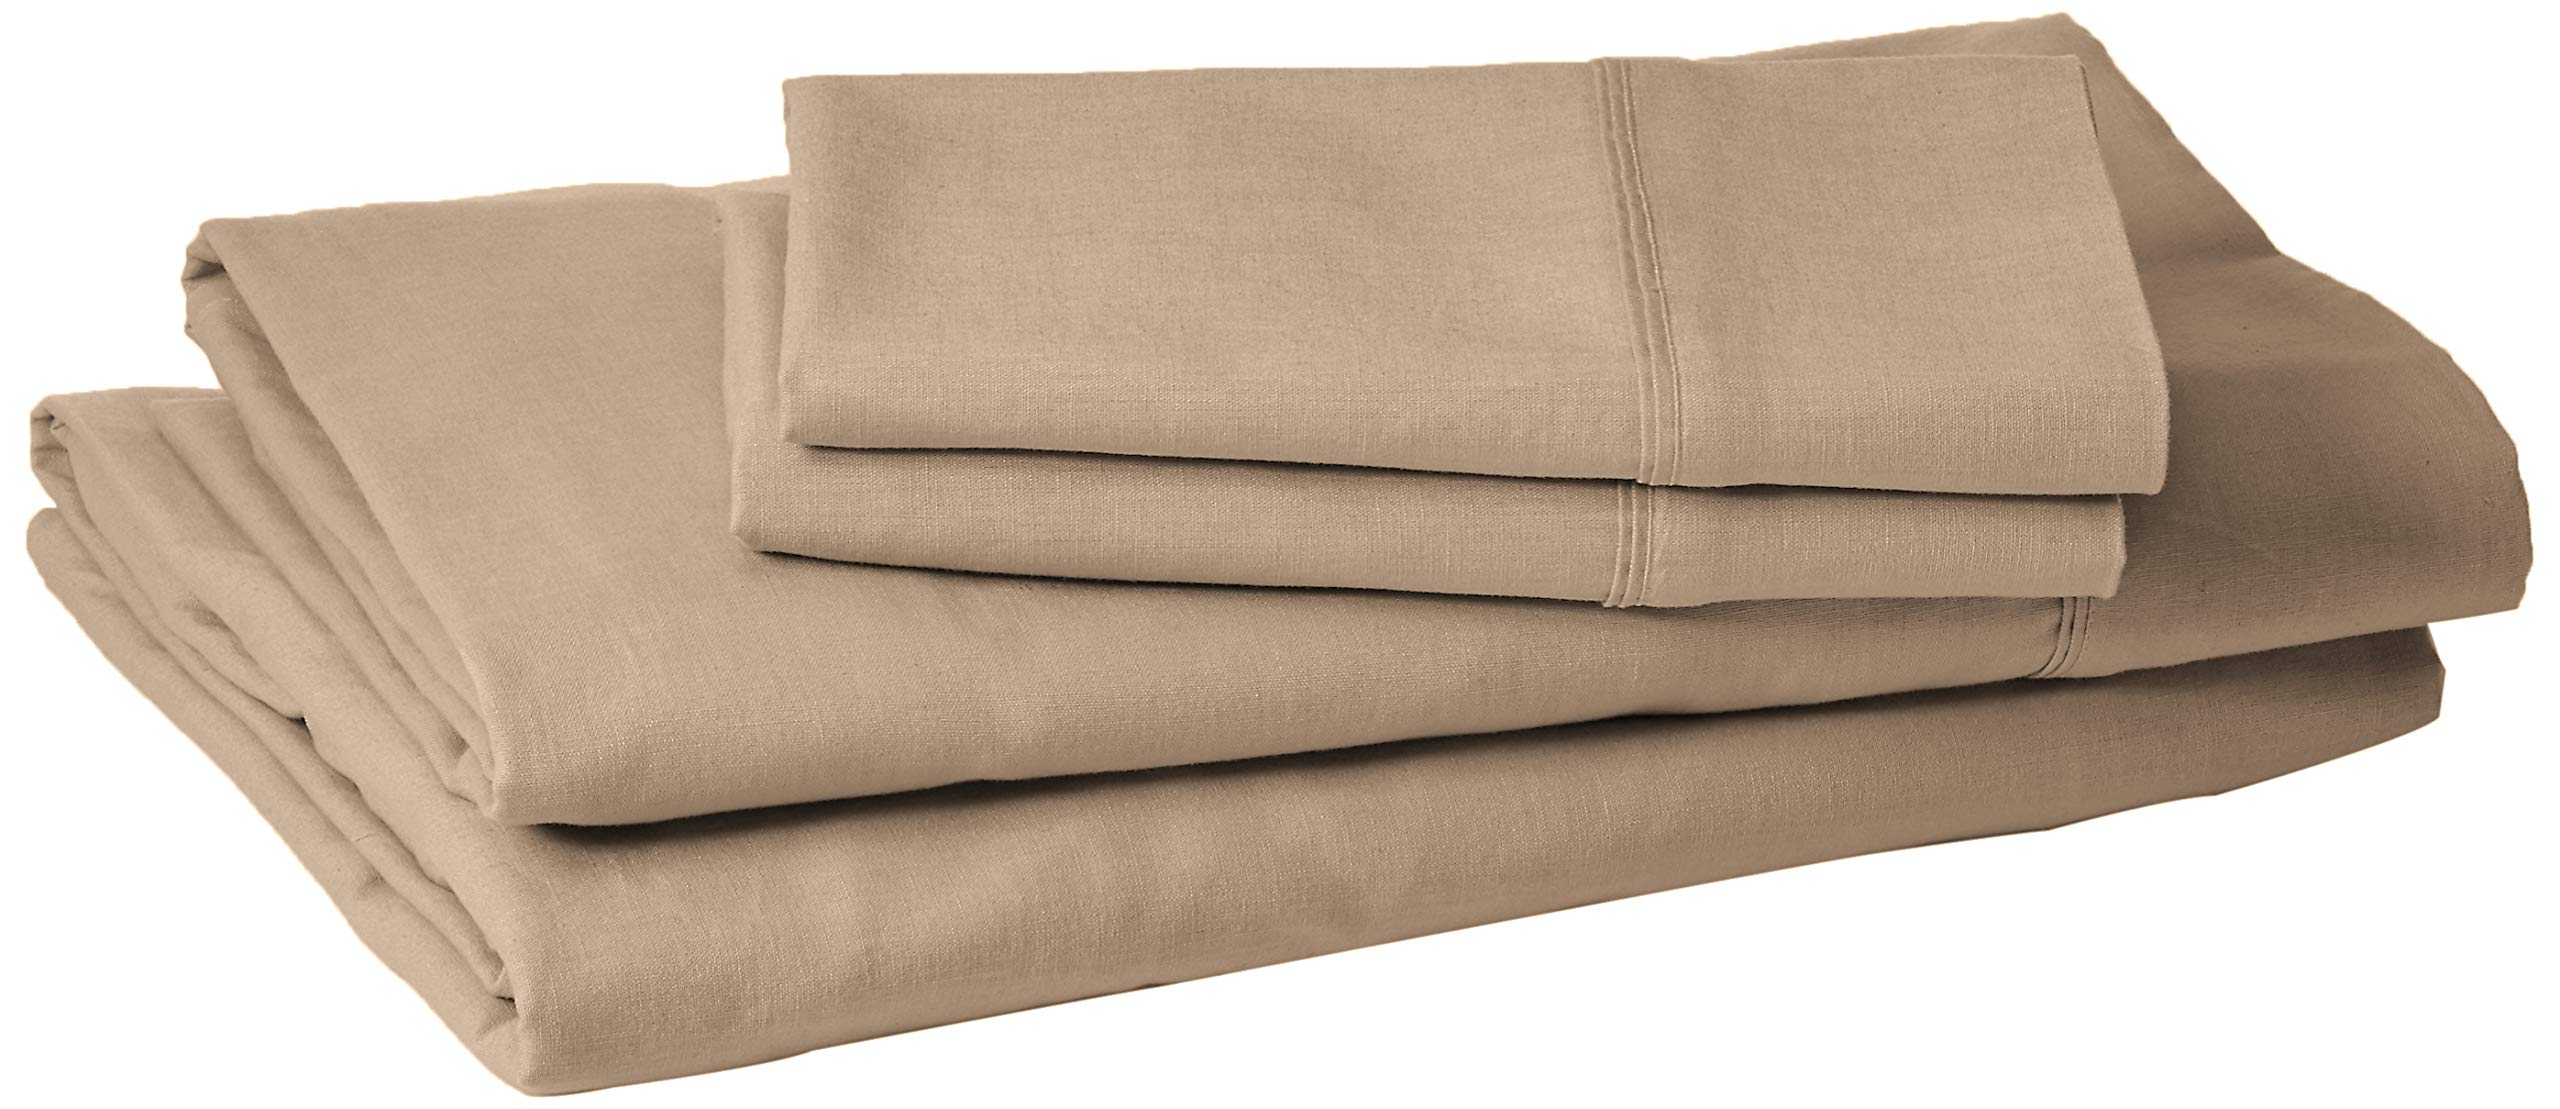 Kenneth Cole Reaction Home Luxury Sheet